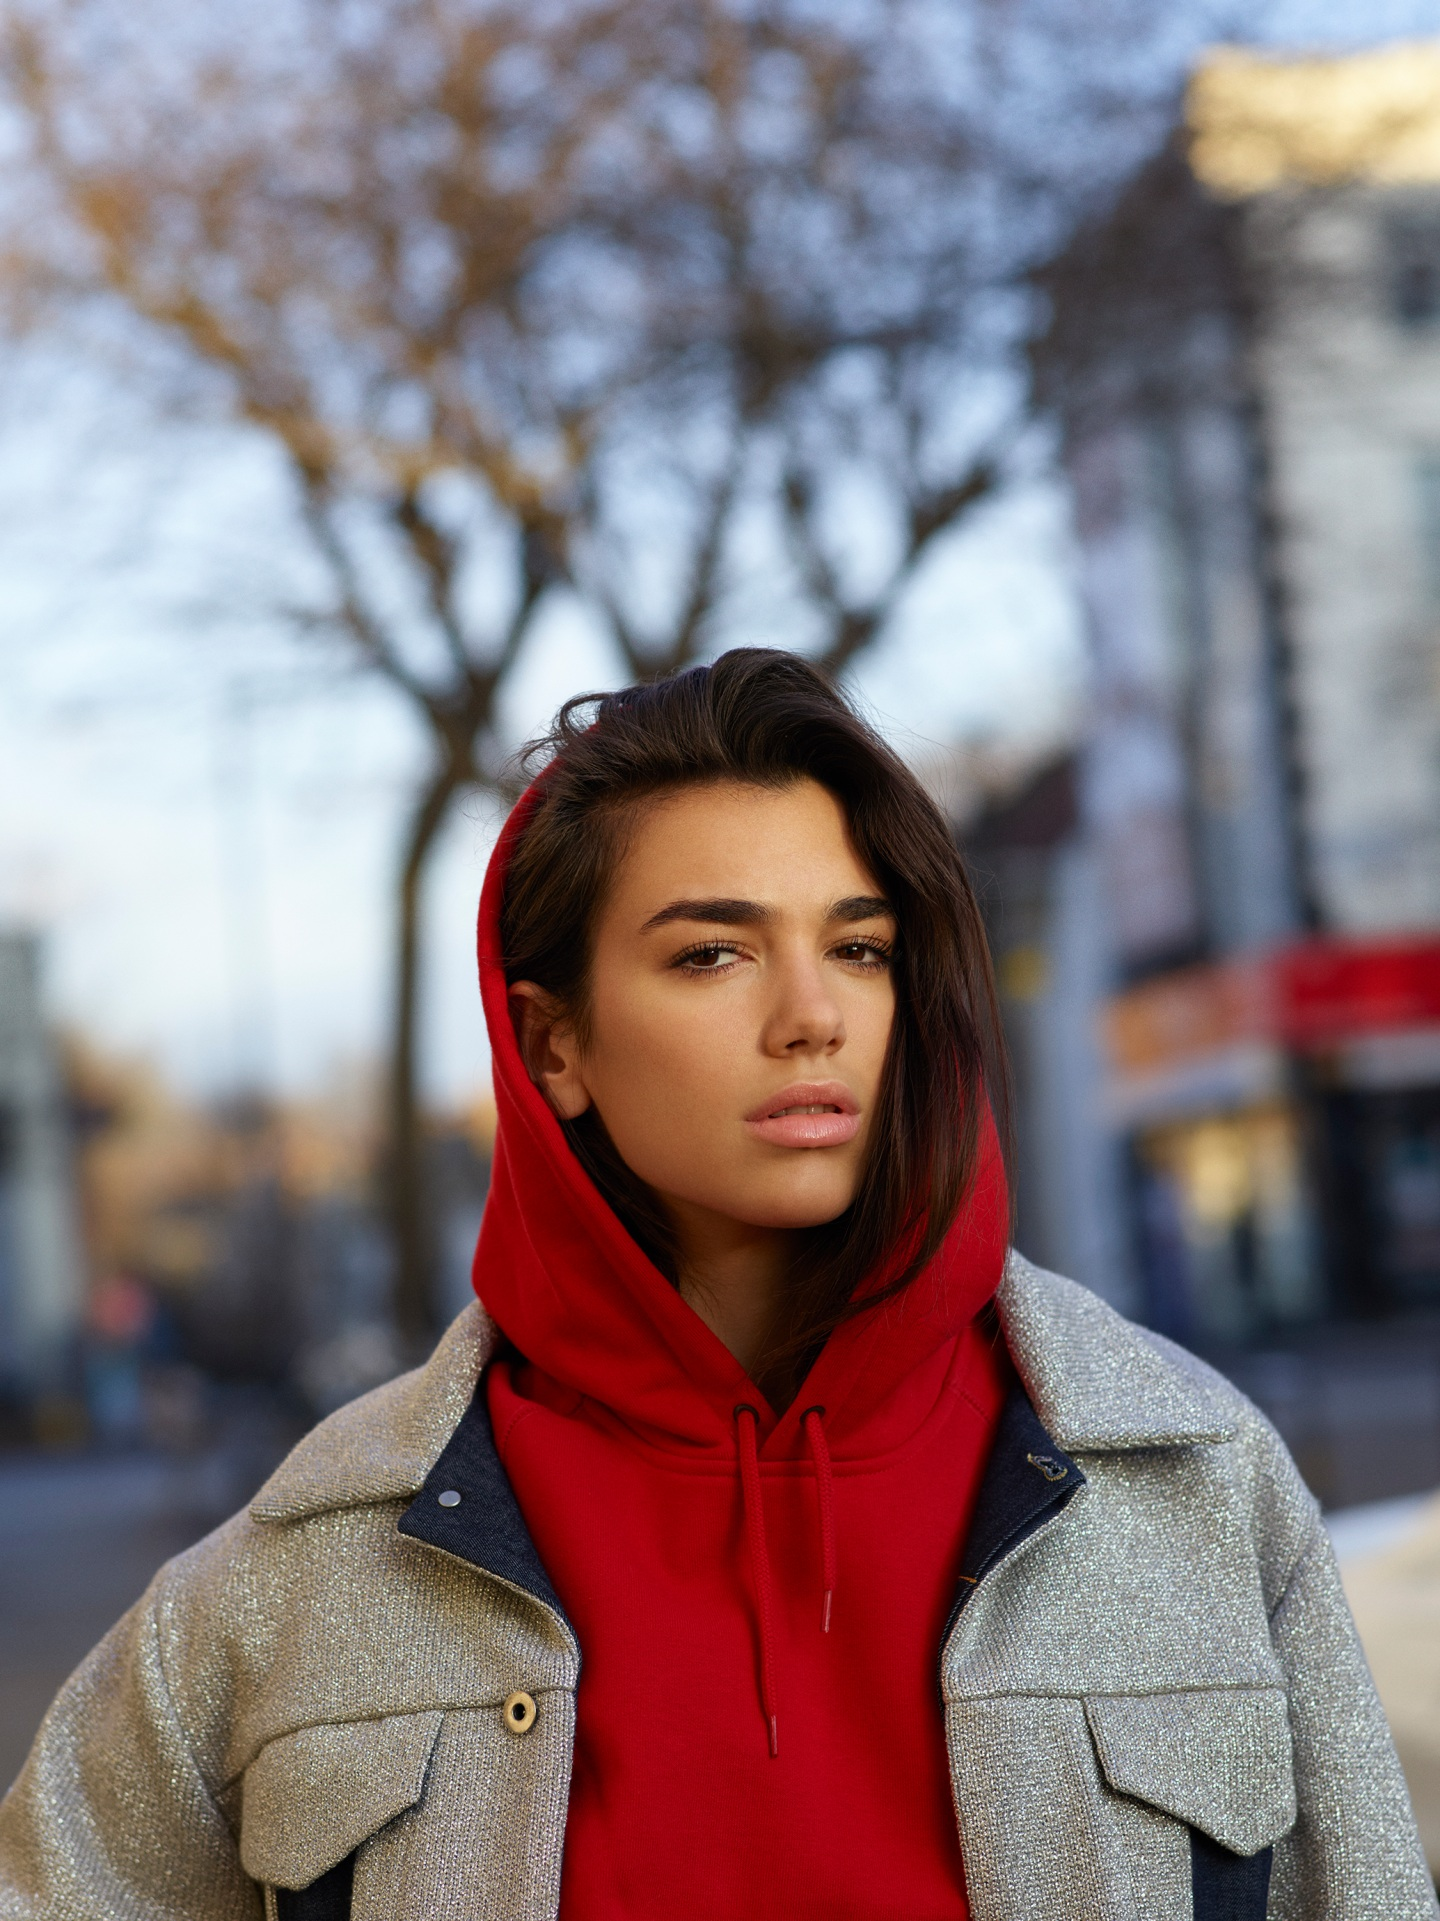 Dua Lipa Street Style - Dua Lipa Net Worth, Pics, Wallpapers, Career and Biography